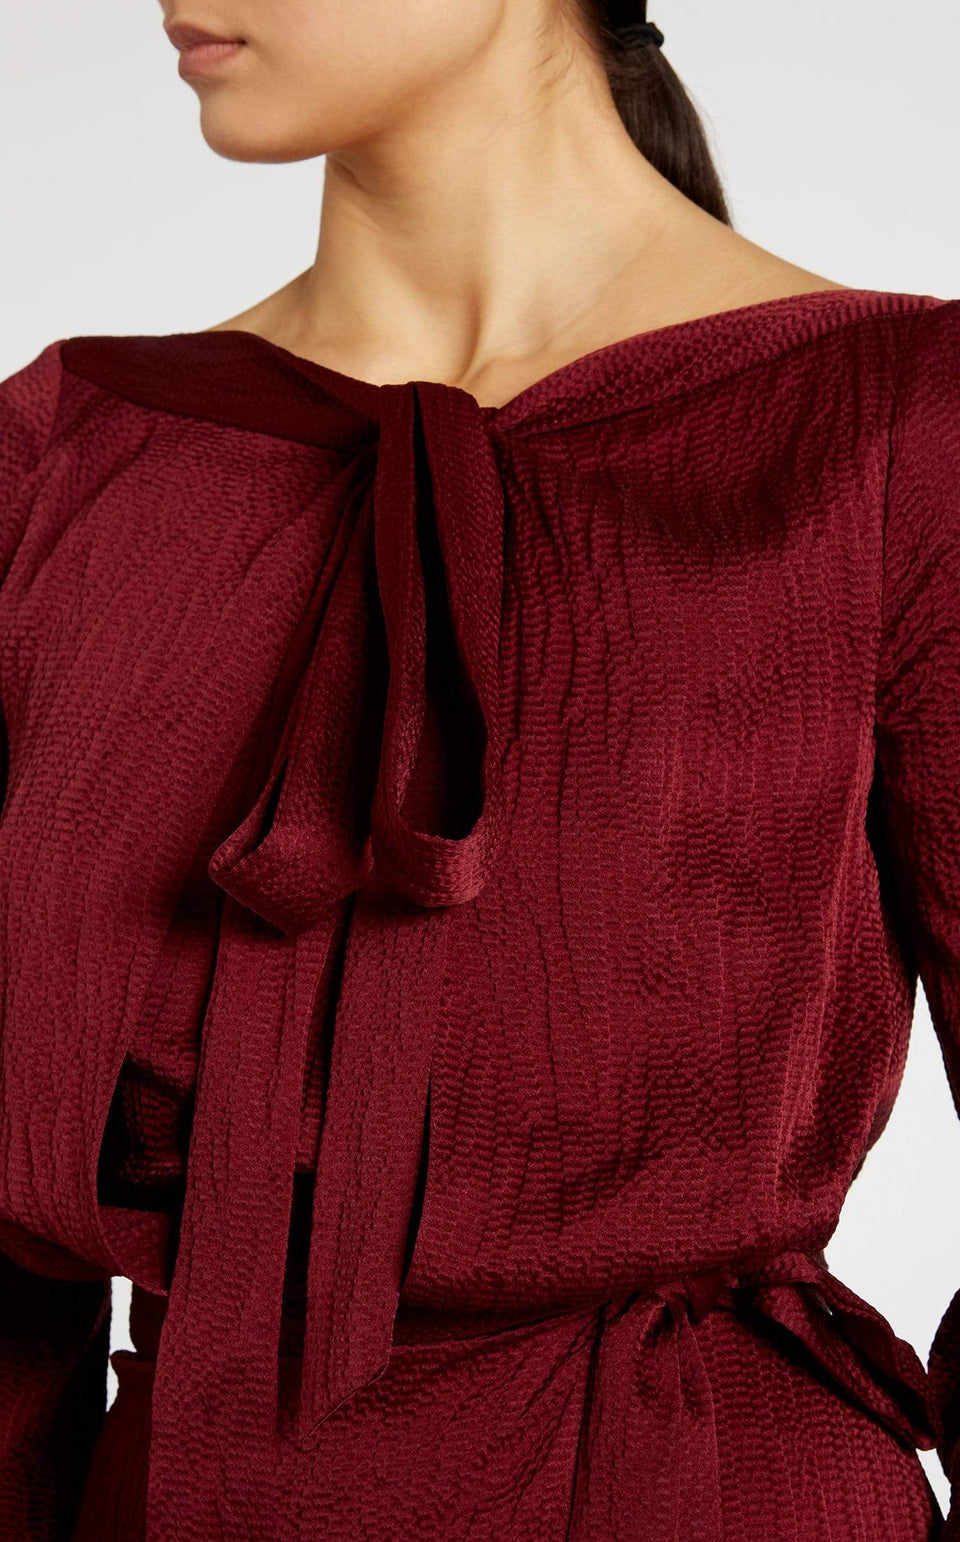 Pilar Top In Cabernet from Roland Mouret